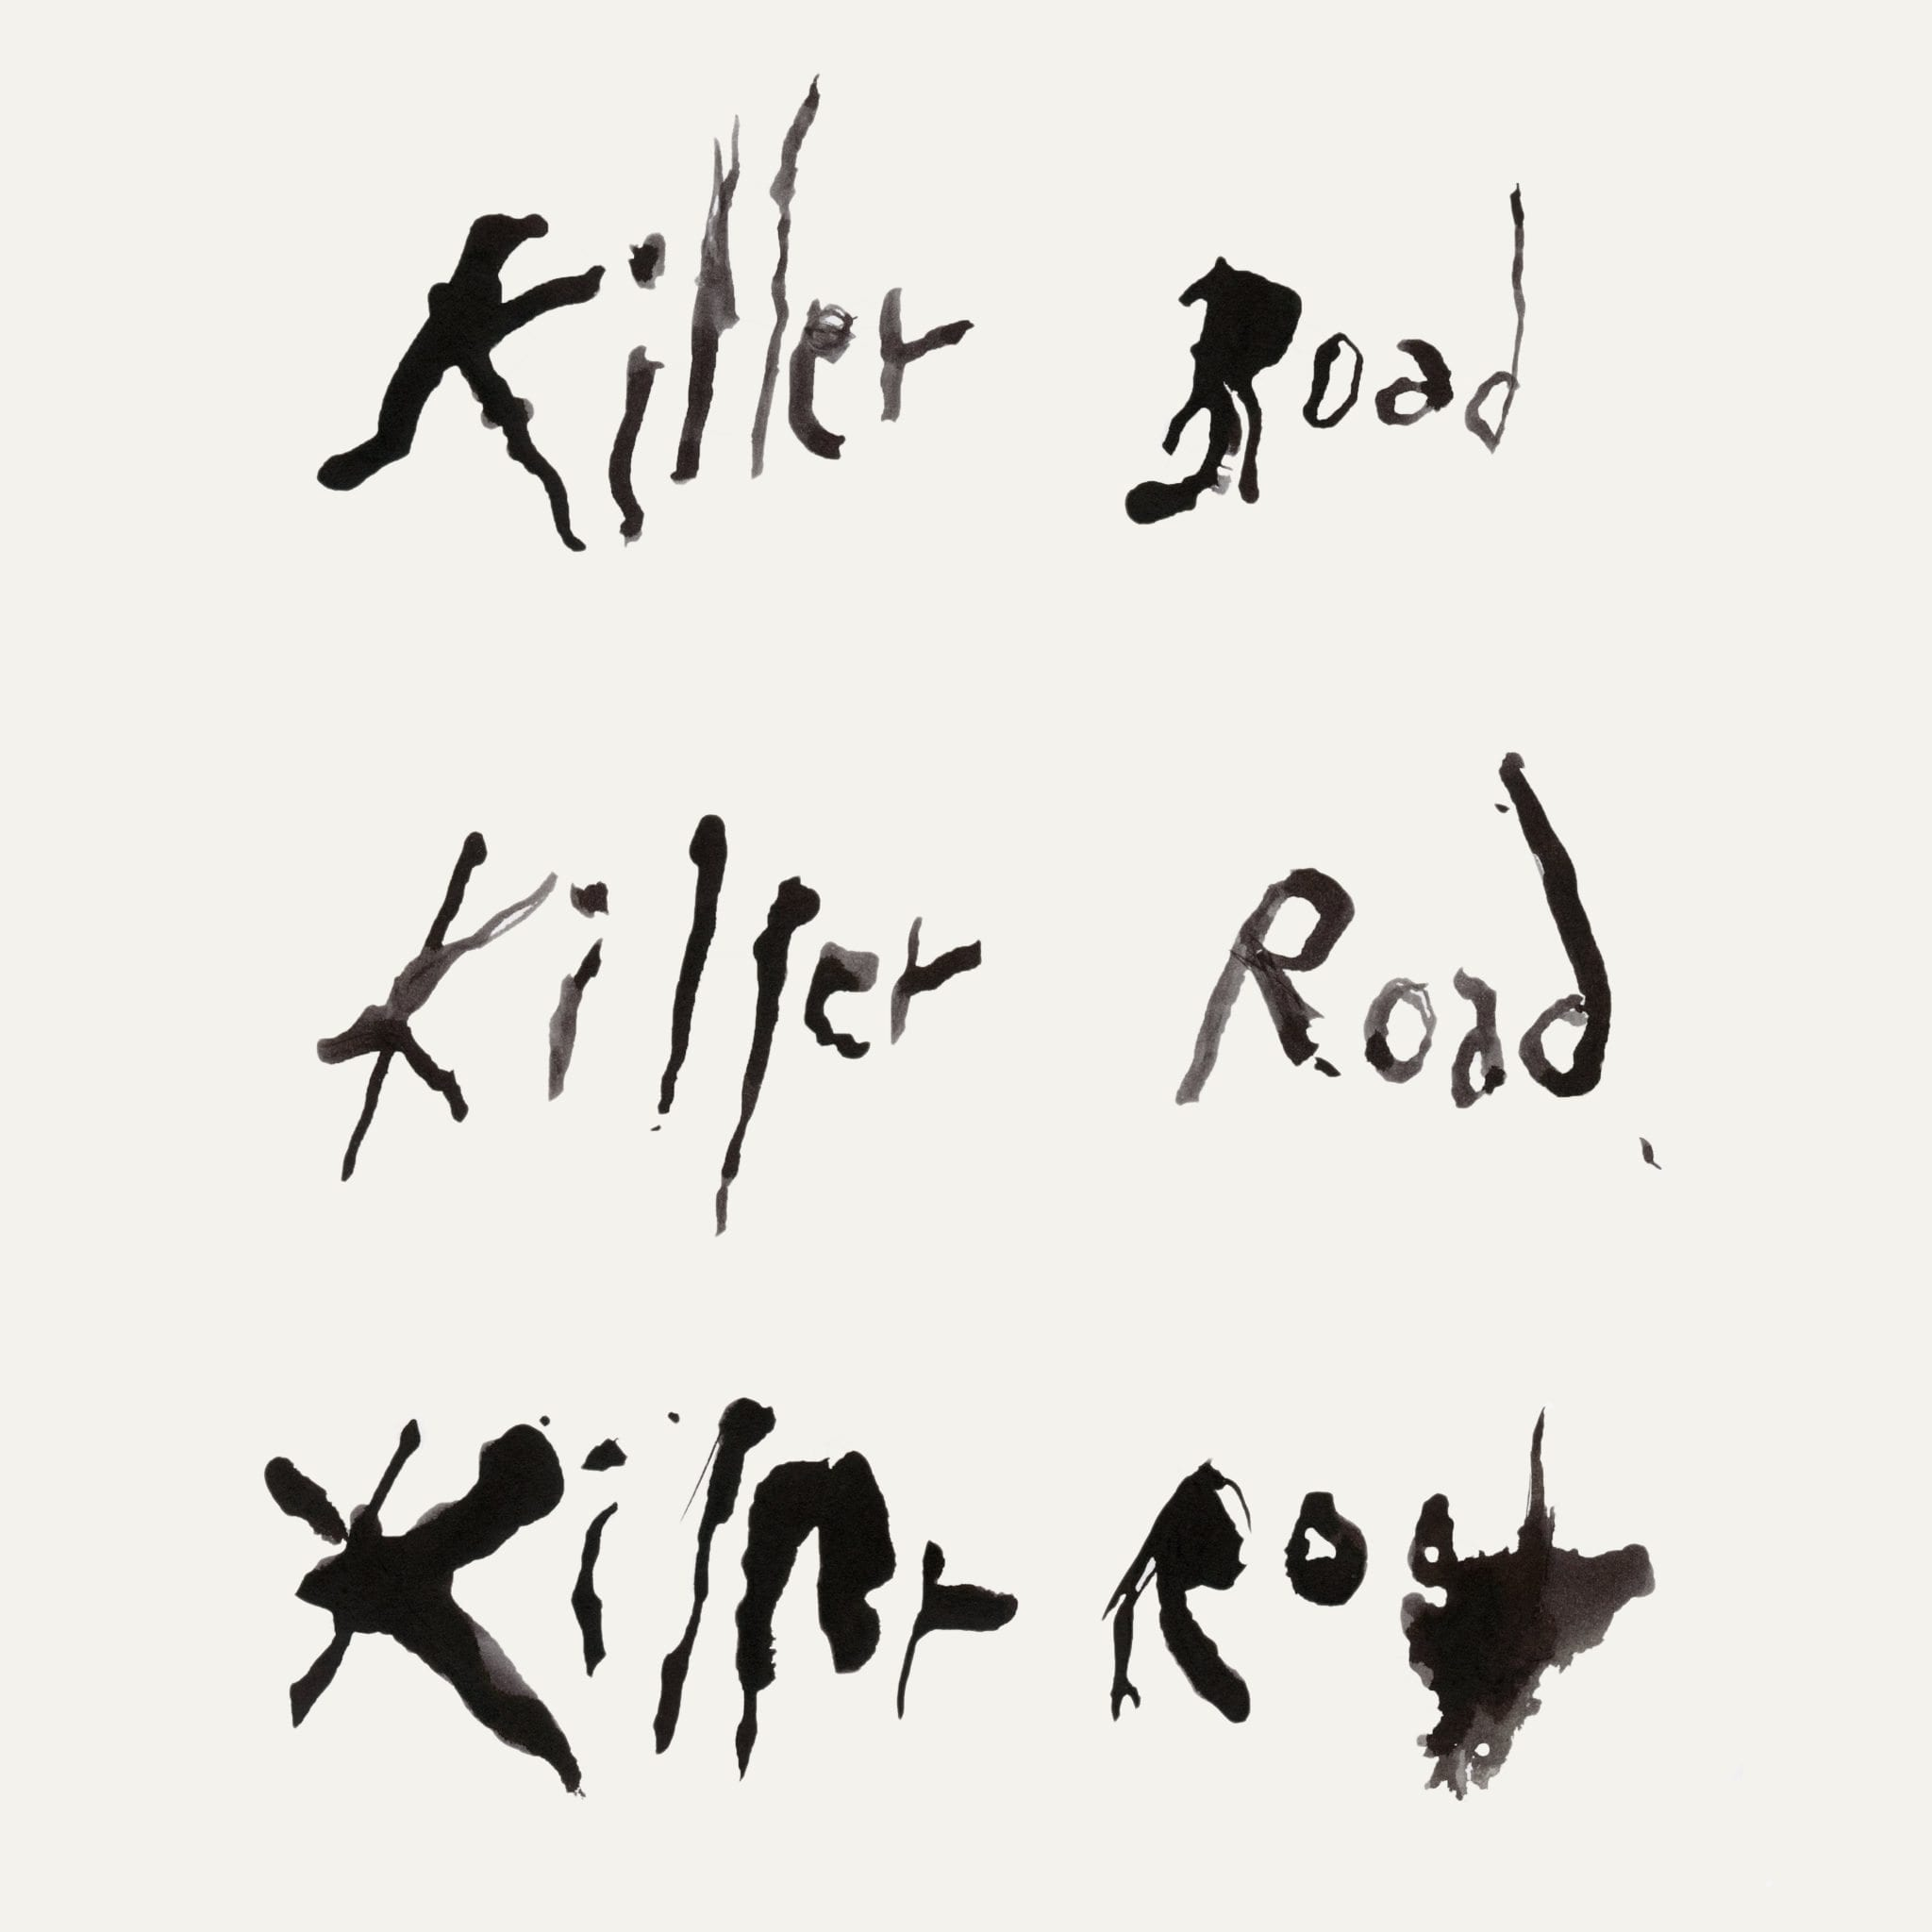 Patti Smith, Soundwalk Collective, Killer Road, cover